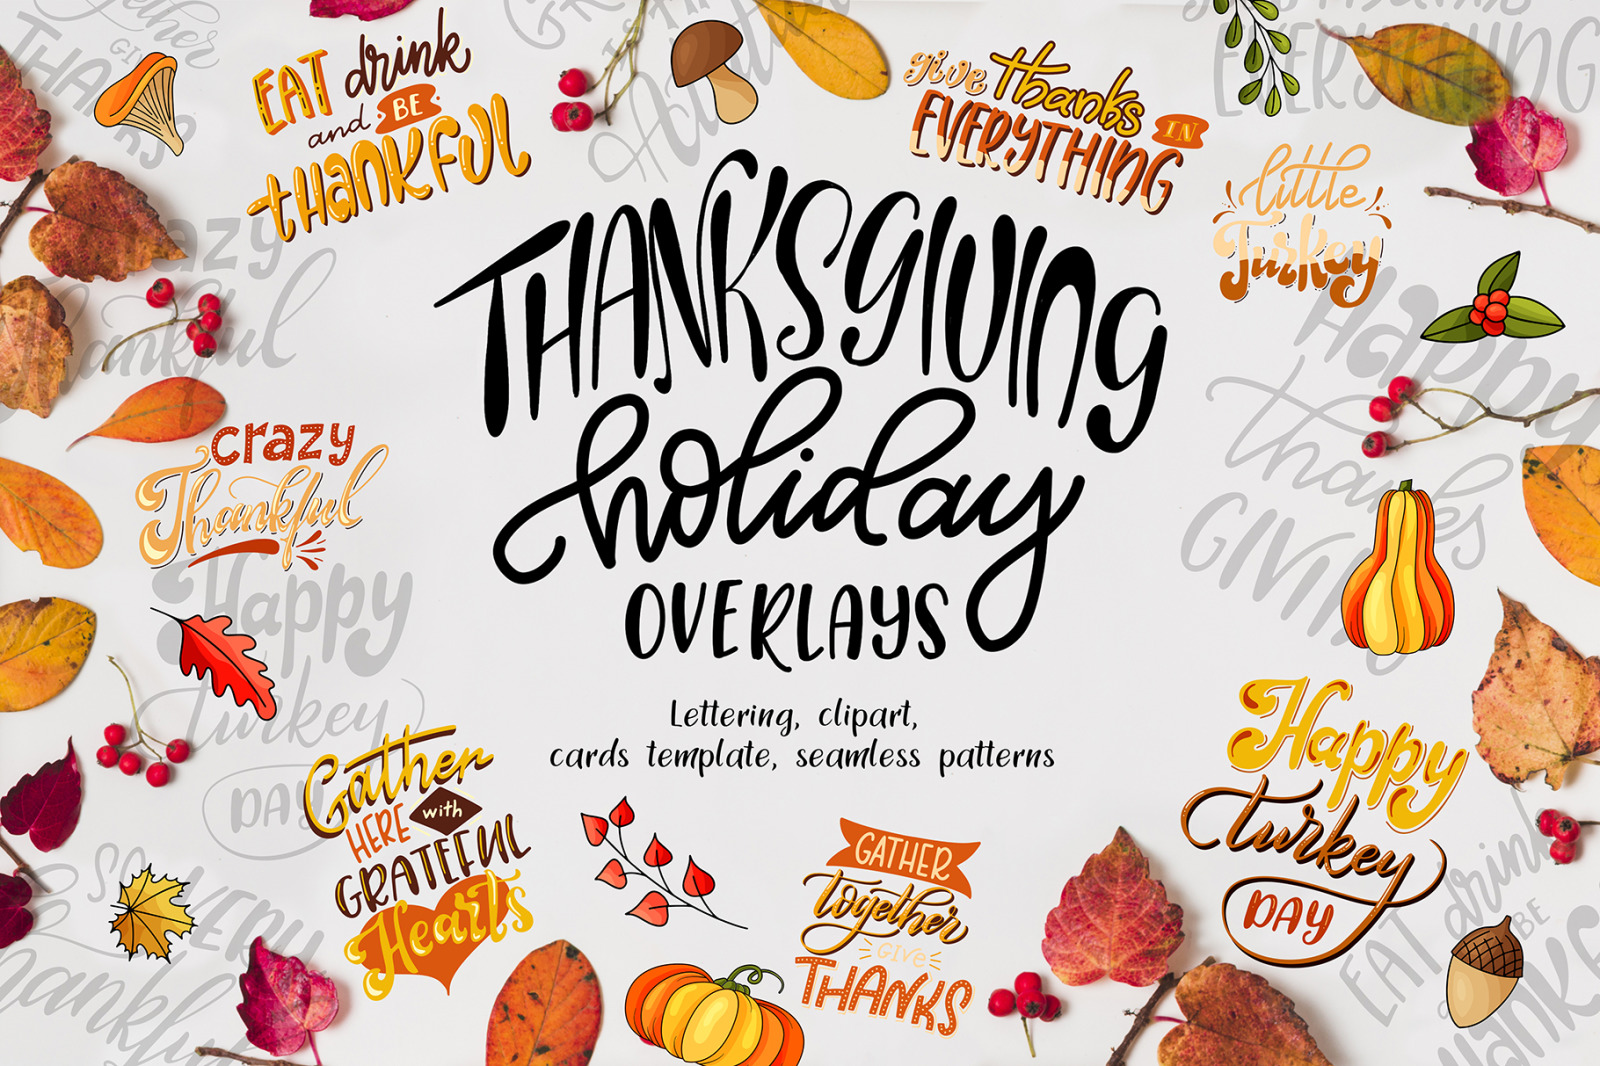 Thanksgiving holiday overlay+clipart